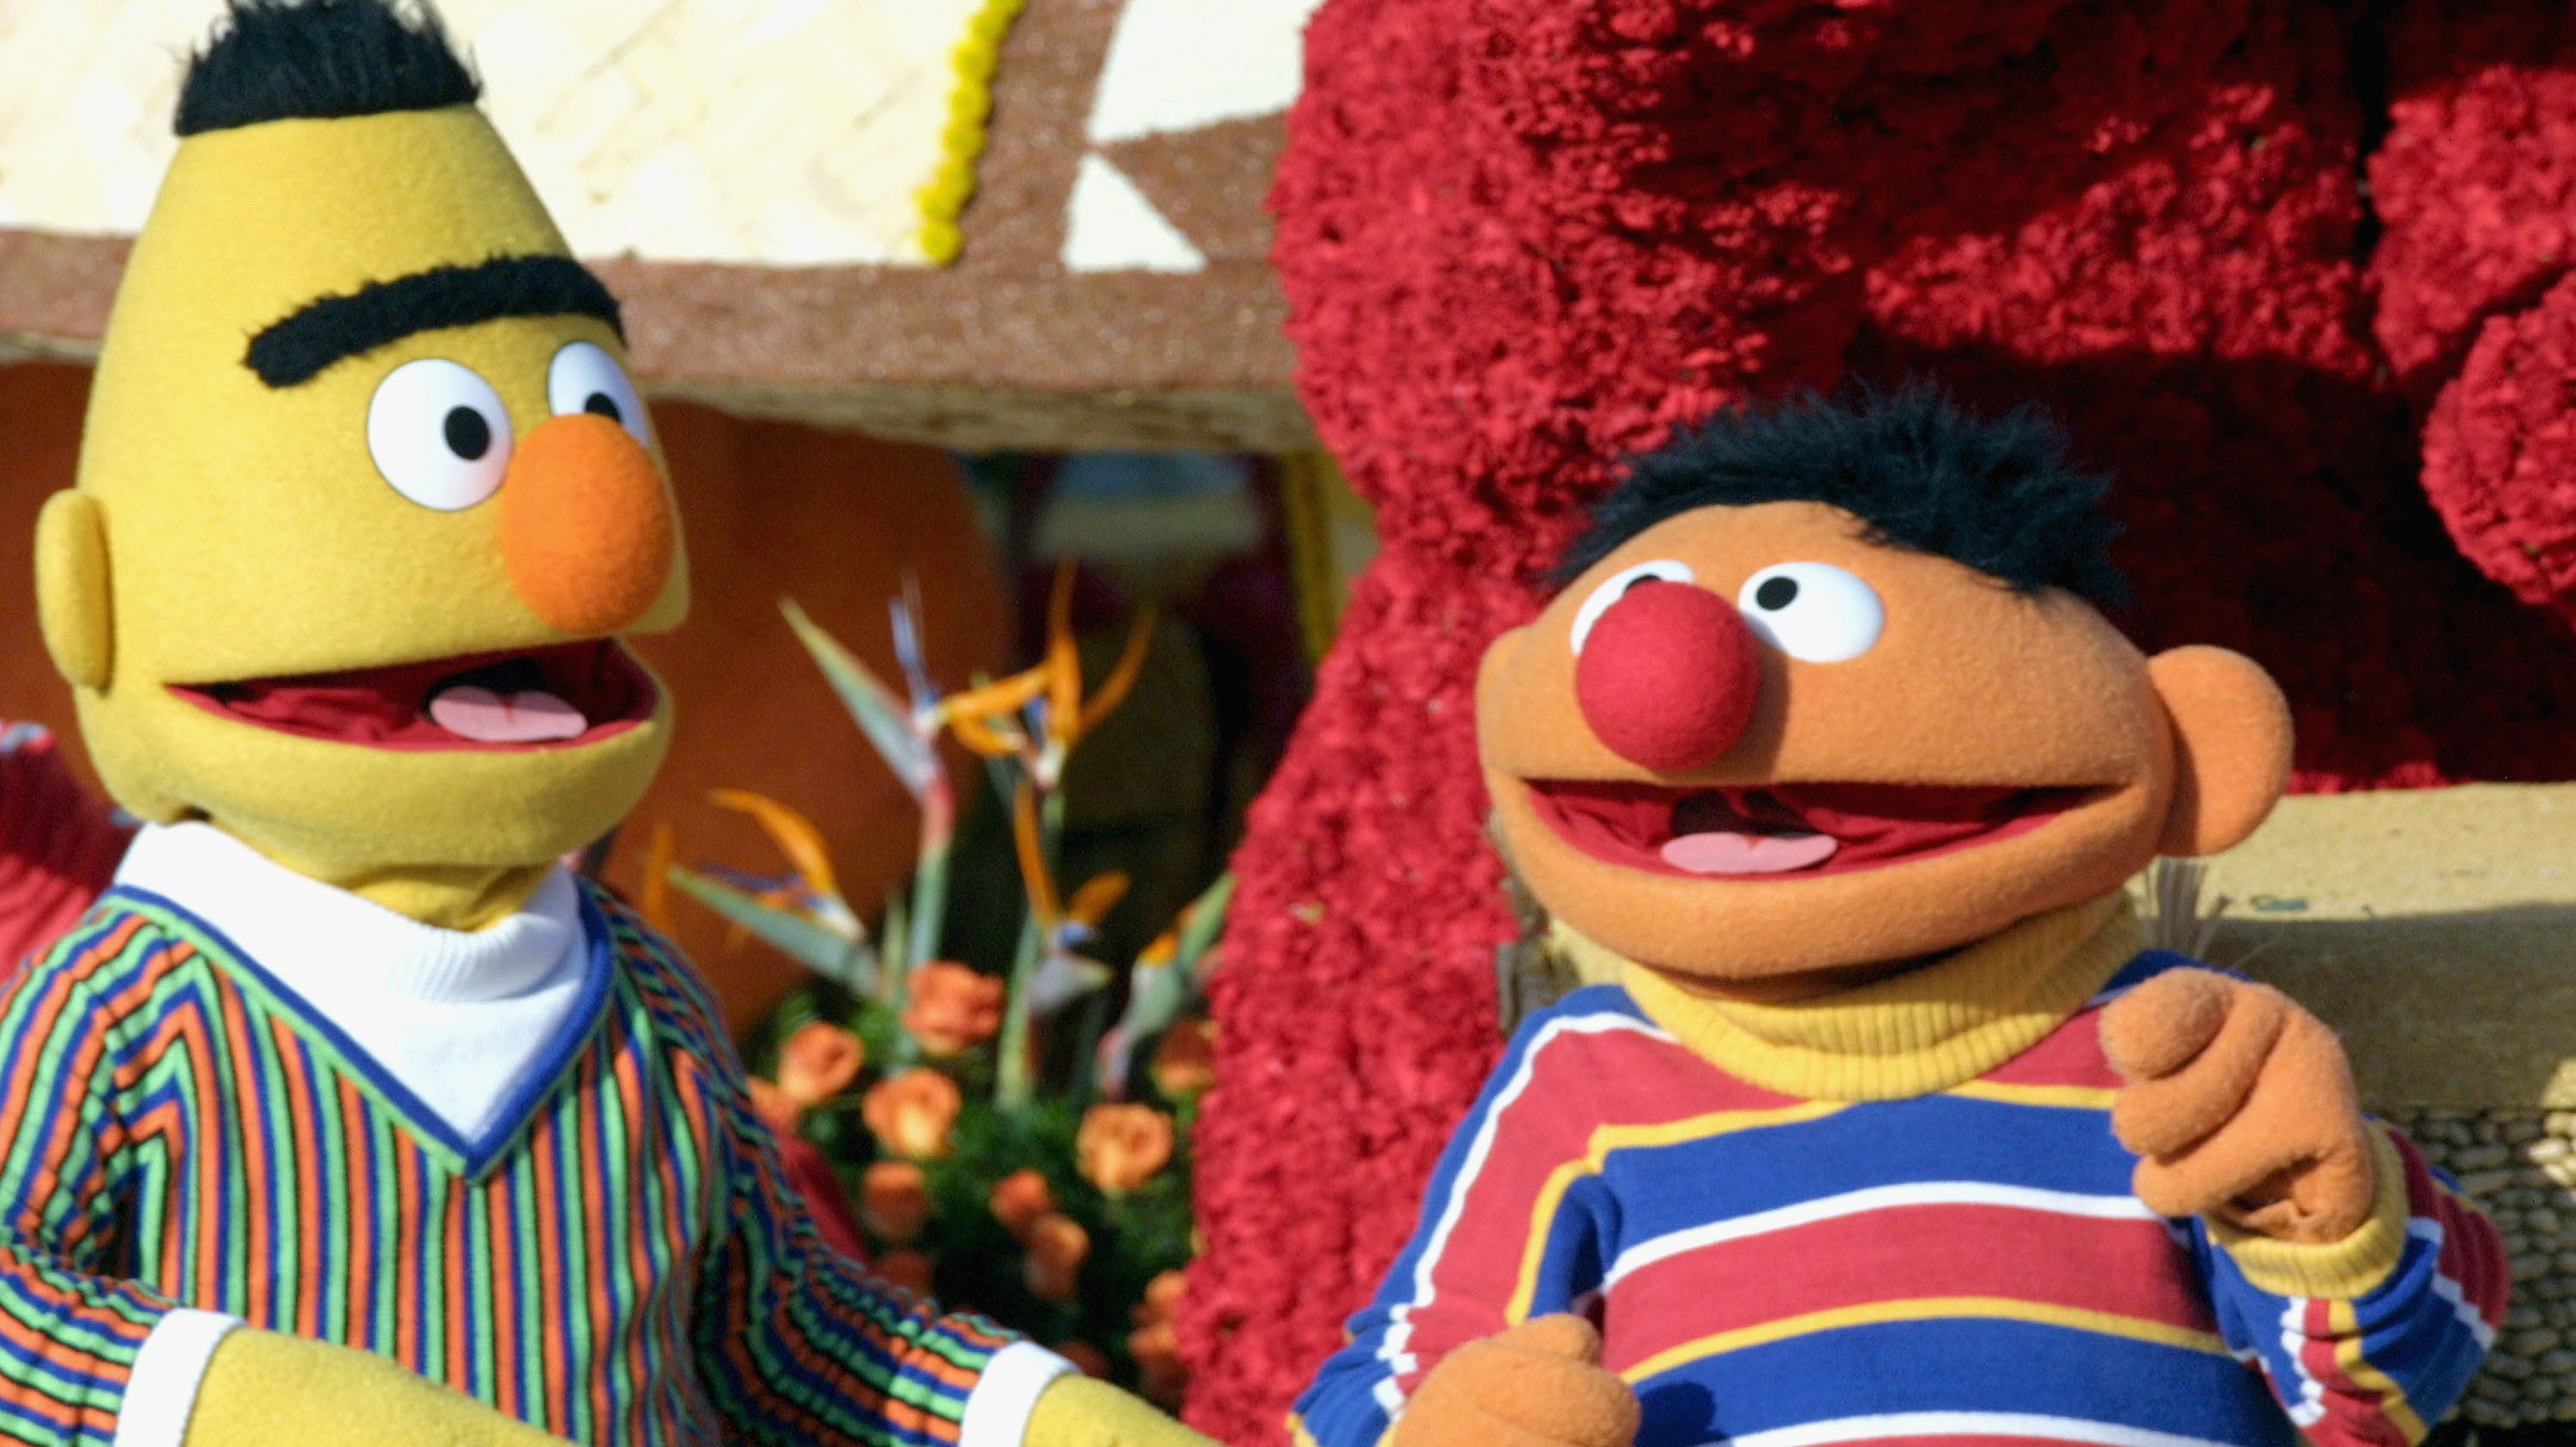 Muppet Theory  on management - it's about getting the ratio of Order-to-Chaos exactly right